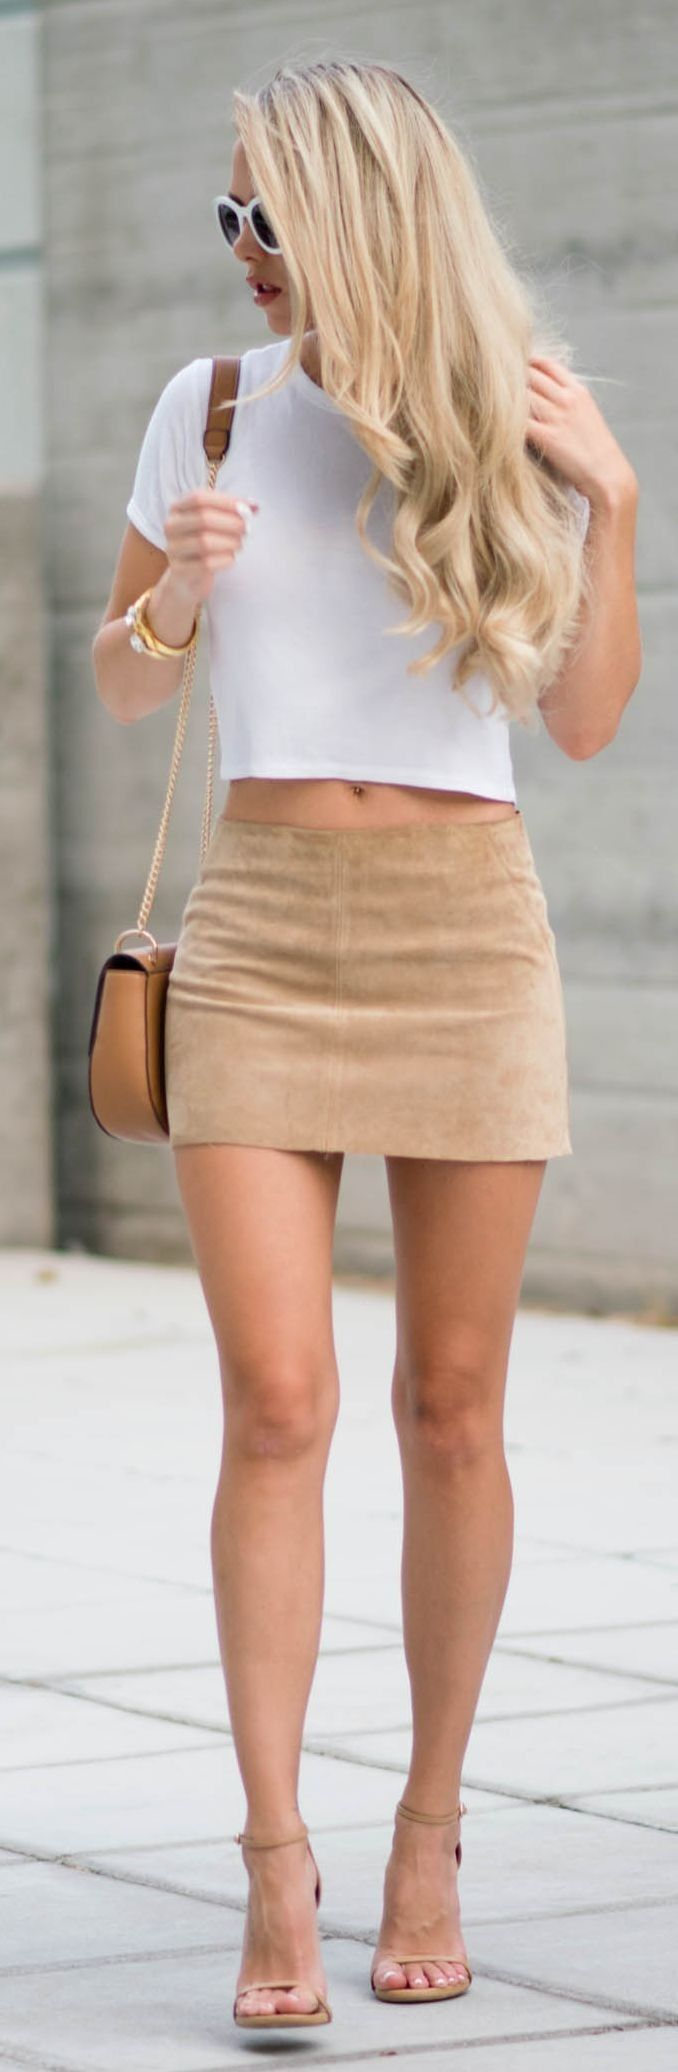 #streetstyle #casualoutfits #spring | White Crop Top + Came Suede Mini Skirt | Kier Couture